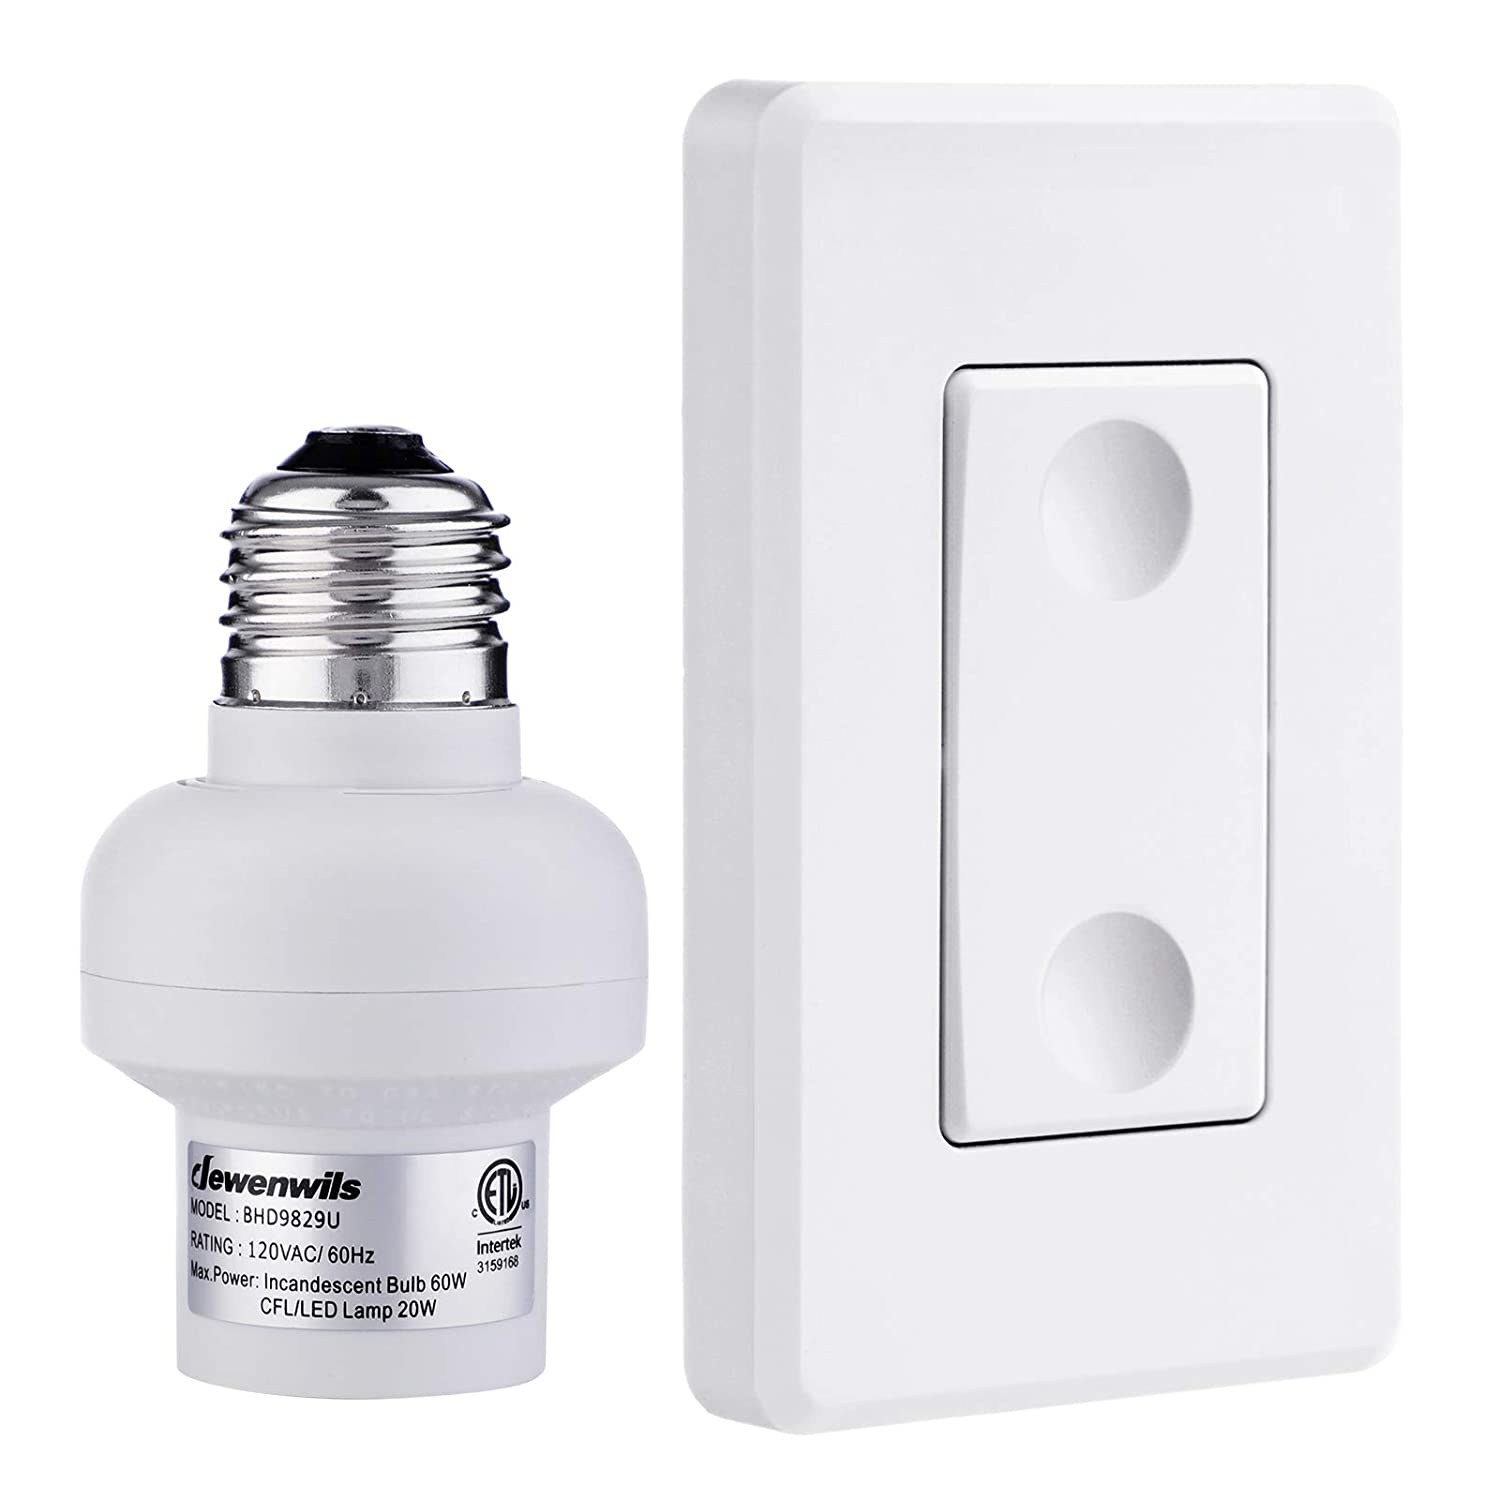 Wiring A Plug To Light Switch